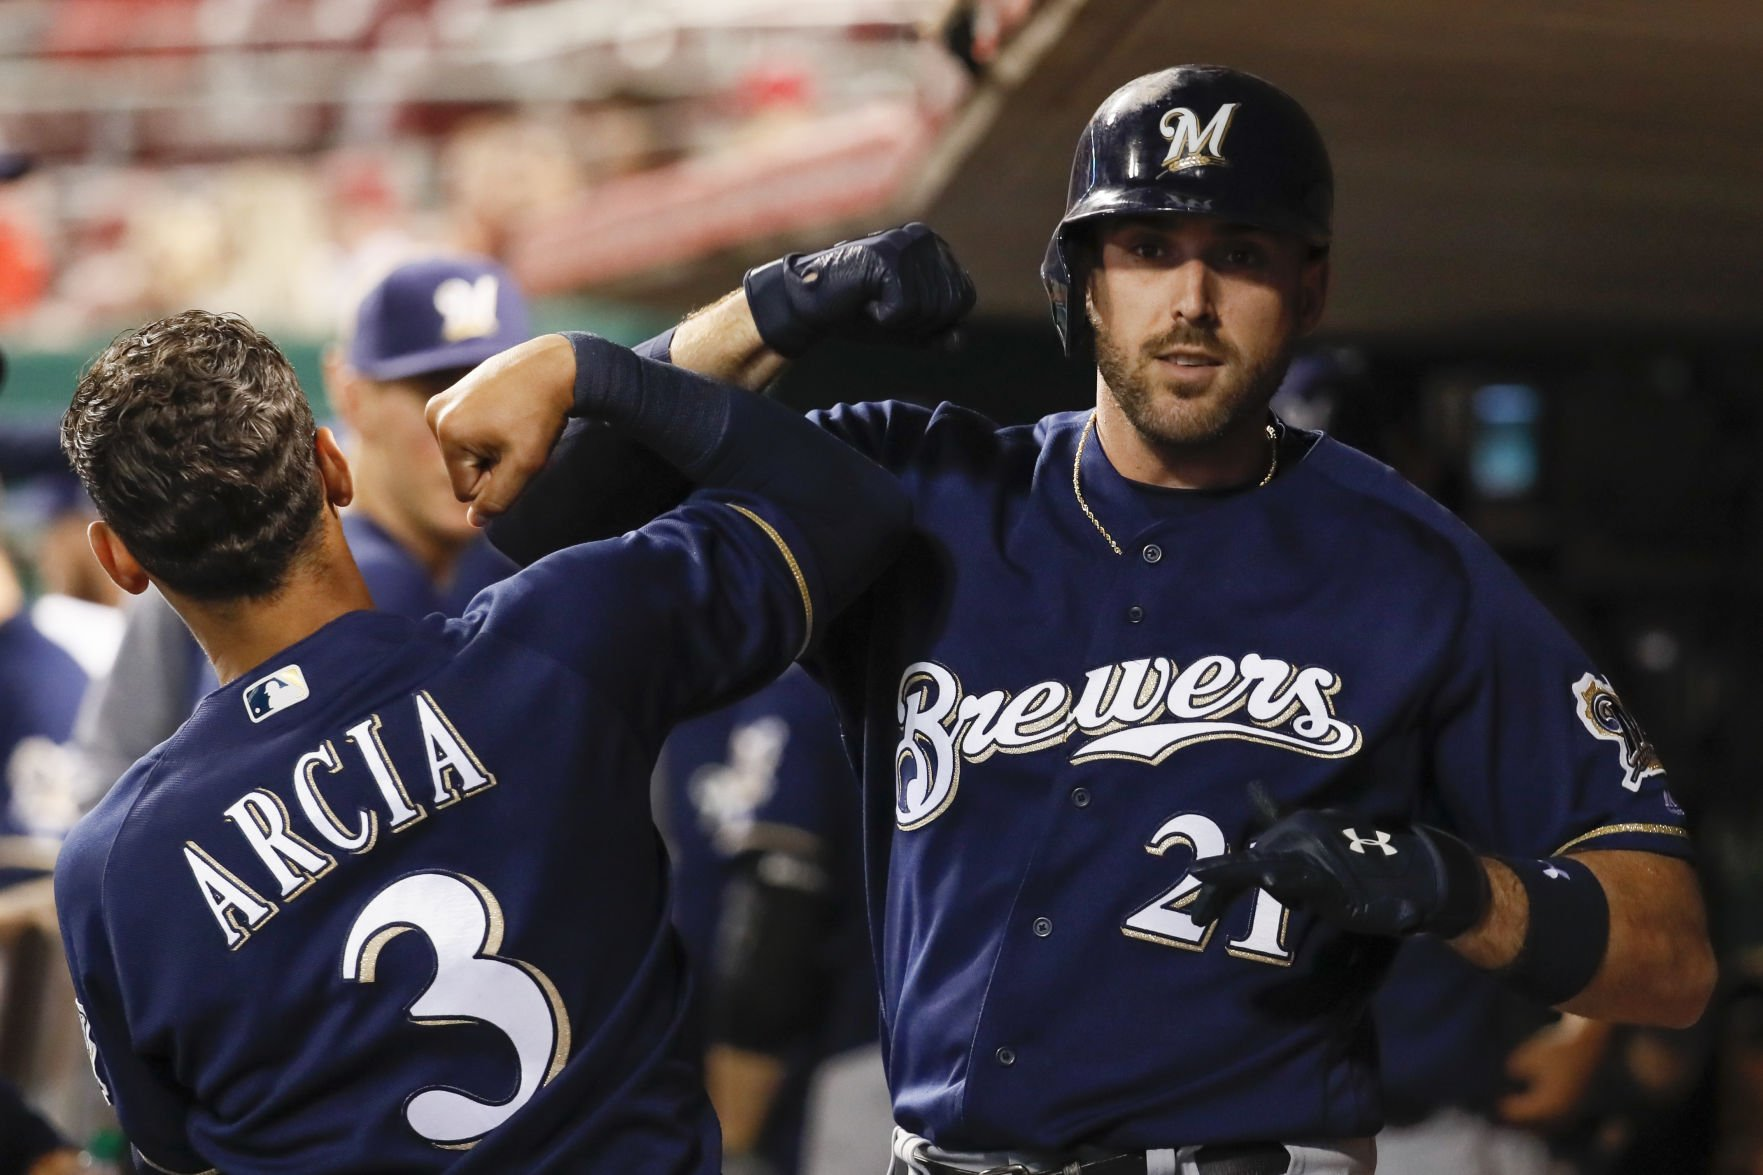 Brewers let another opportunity slip away against Reds